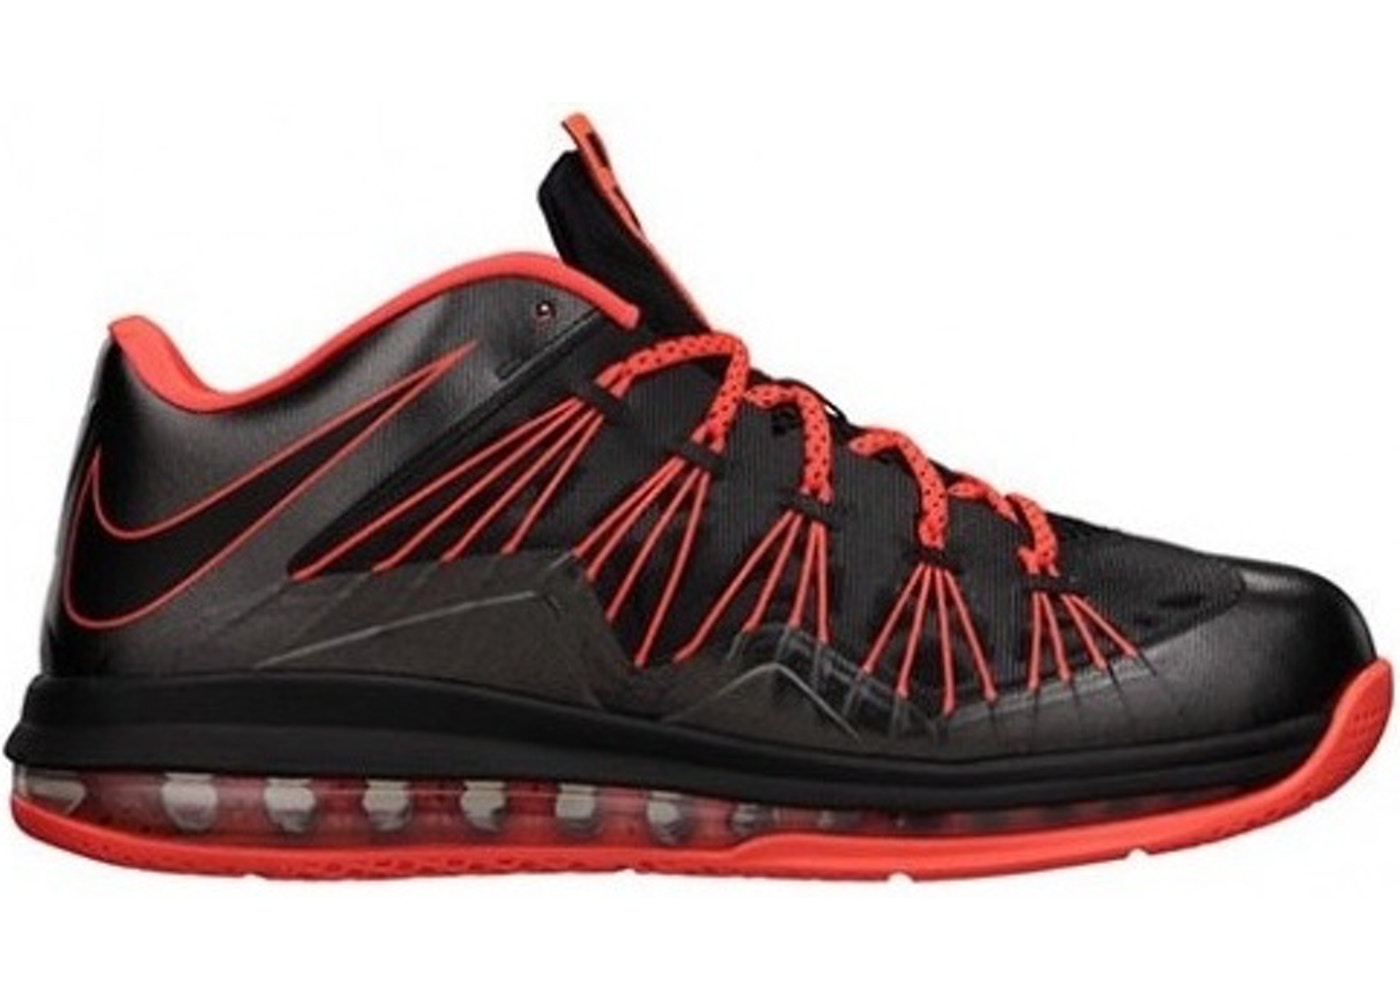 competitive price 658e9 c2009 Buy Nike LeBron 10 Shoes   Deadstock Sneakers